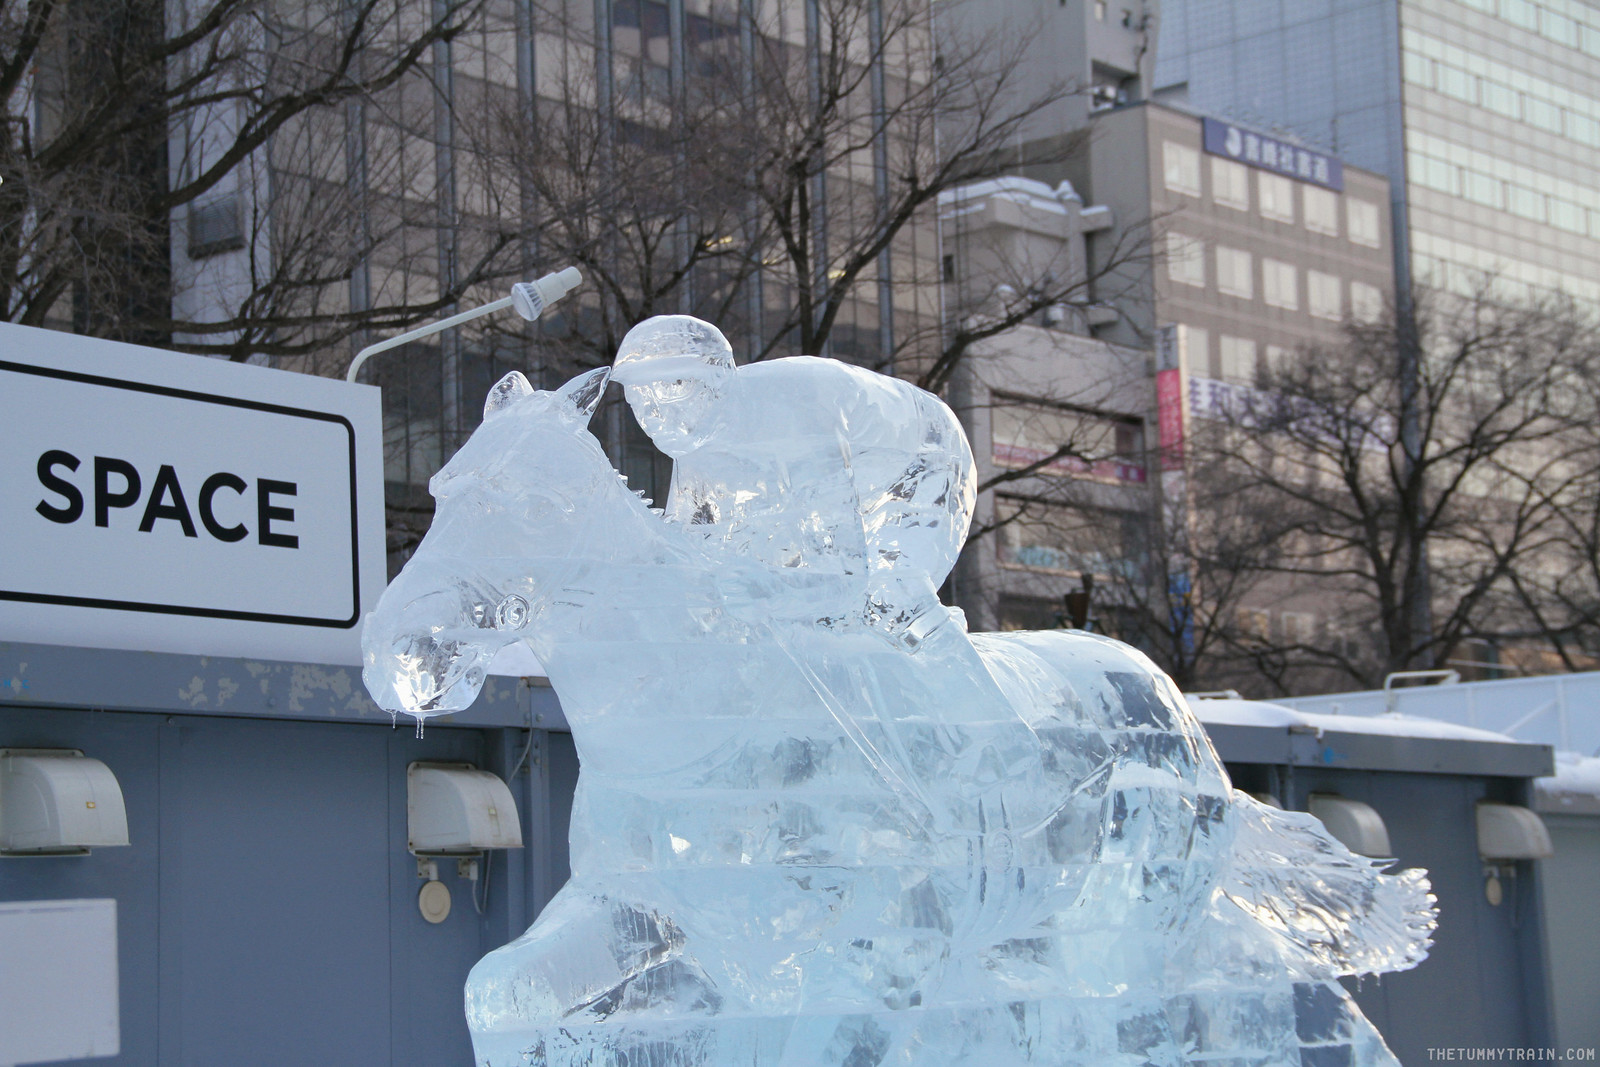 32074622114 6ff4013496 h - Sights, Sounds, and Smells at the 68th Sapporo Snow Festival at Odori Park